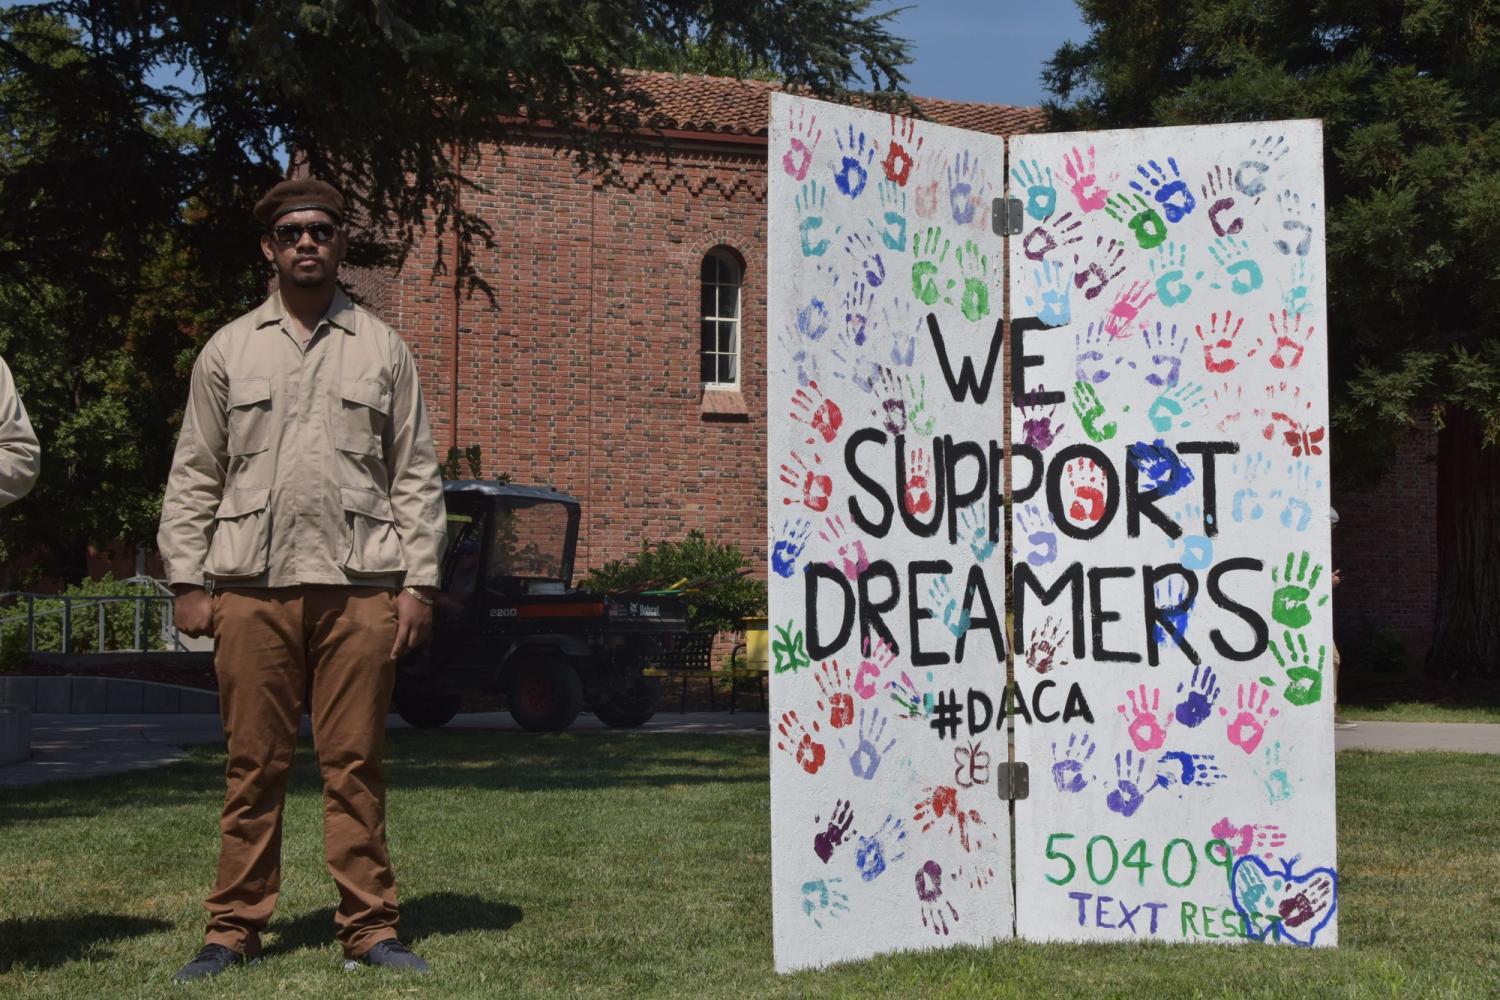 Brown Beret activist stands tall next to student-made banner Photo credit: Nicole Henson